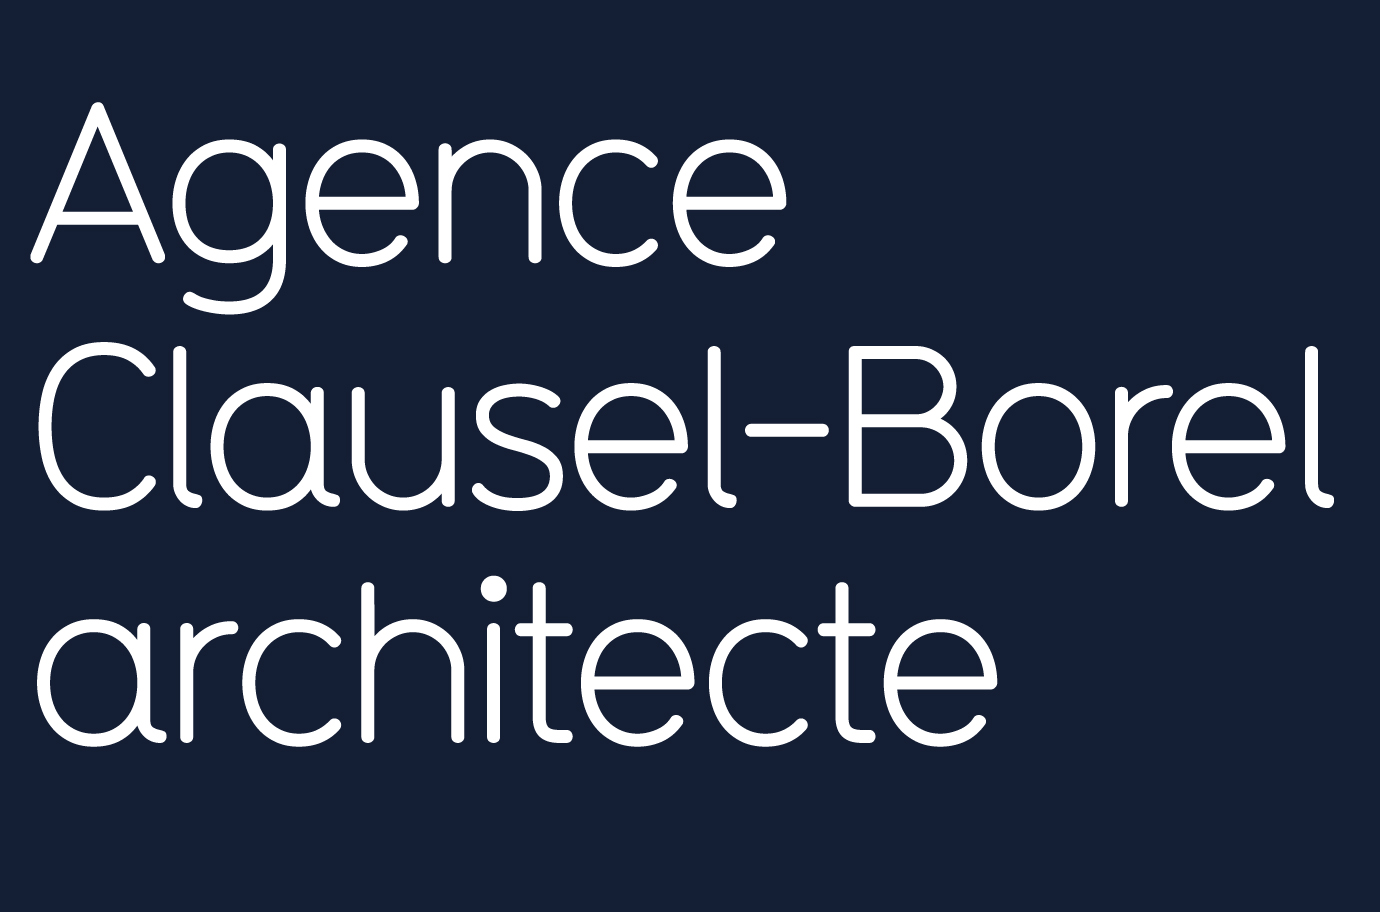 Agence Clausel-Borel architecte